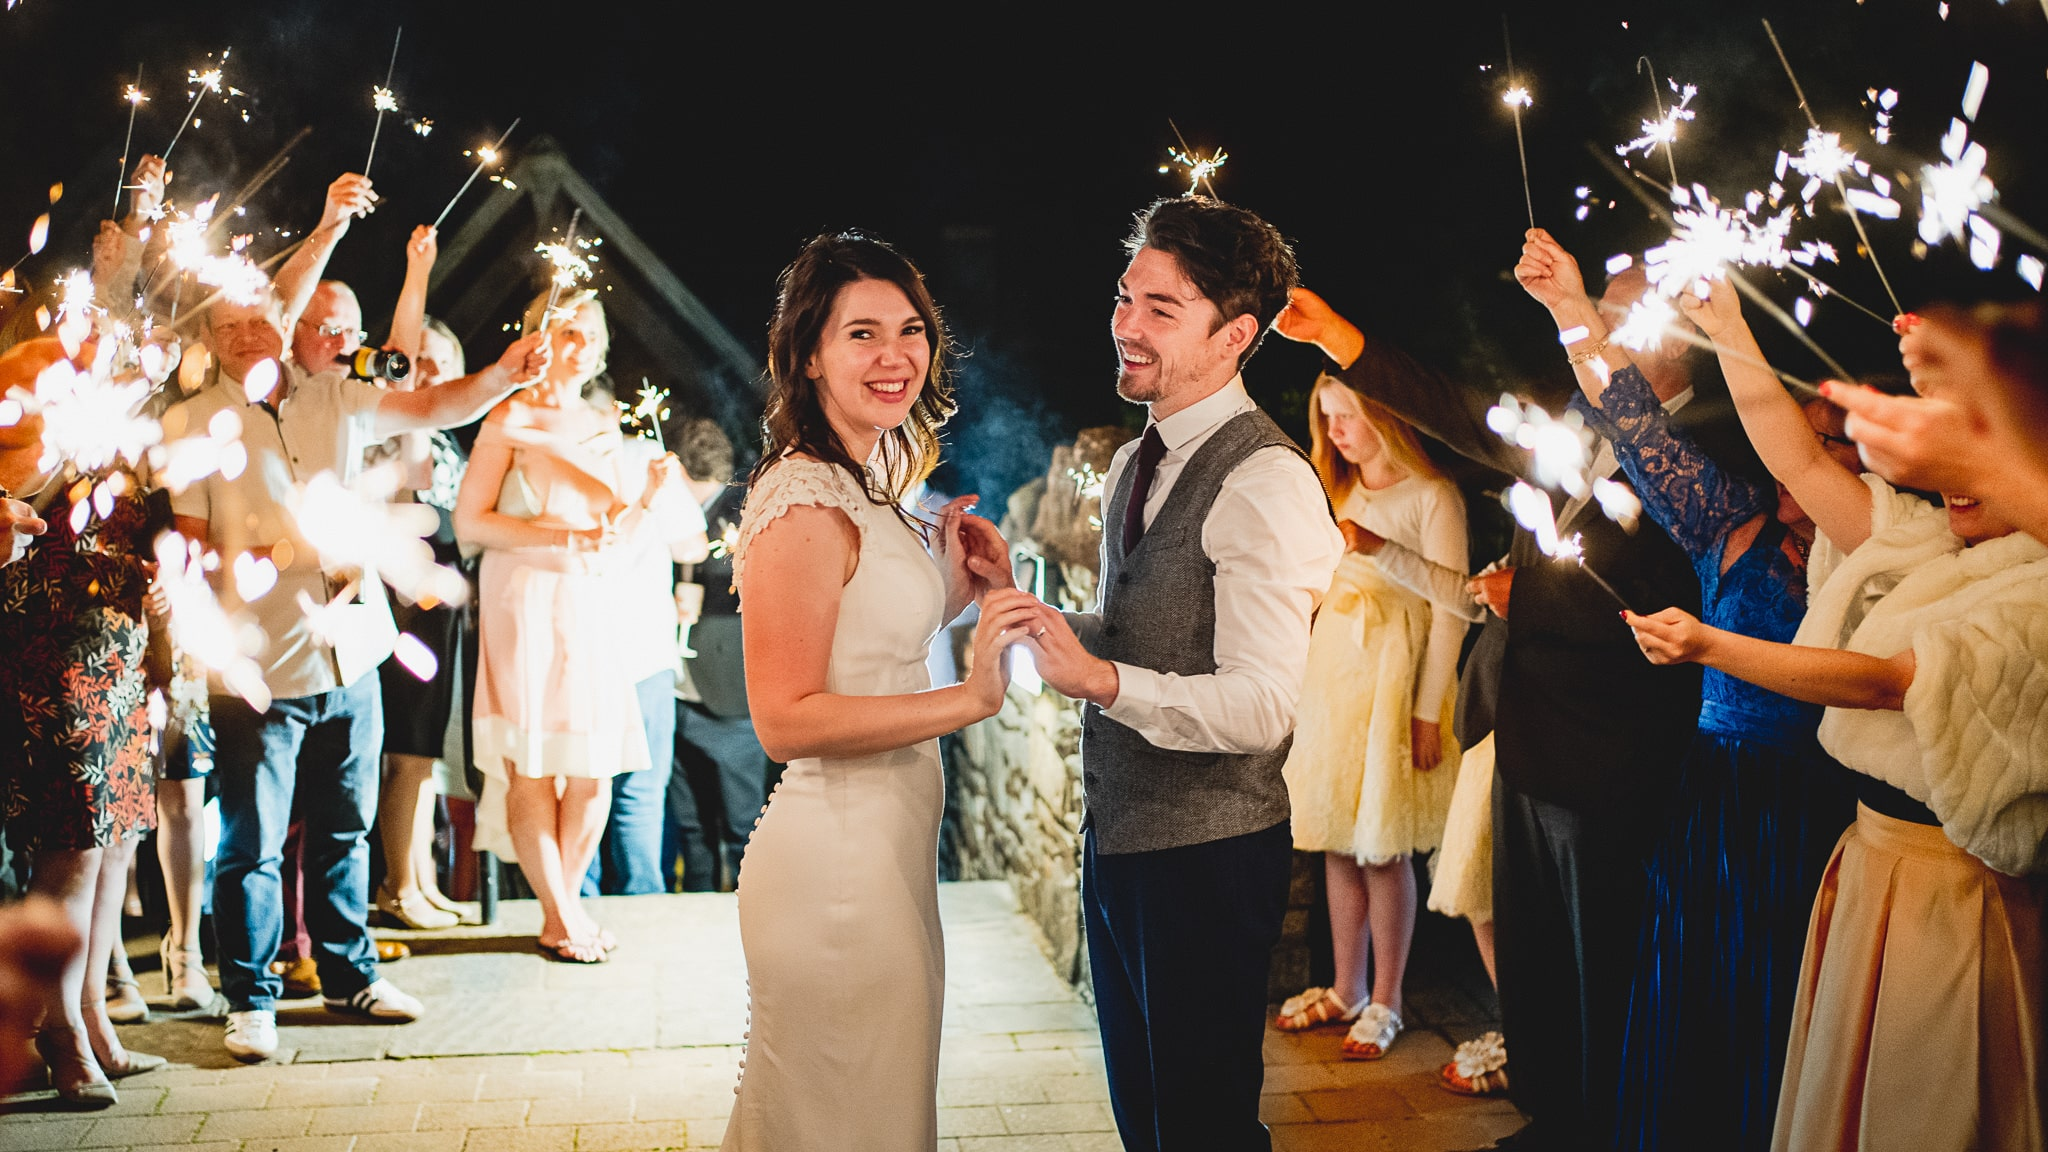 Canada Lodge & Lake wedding photography of sparklers with the bride and groom